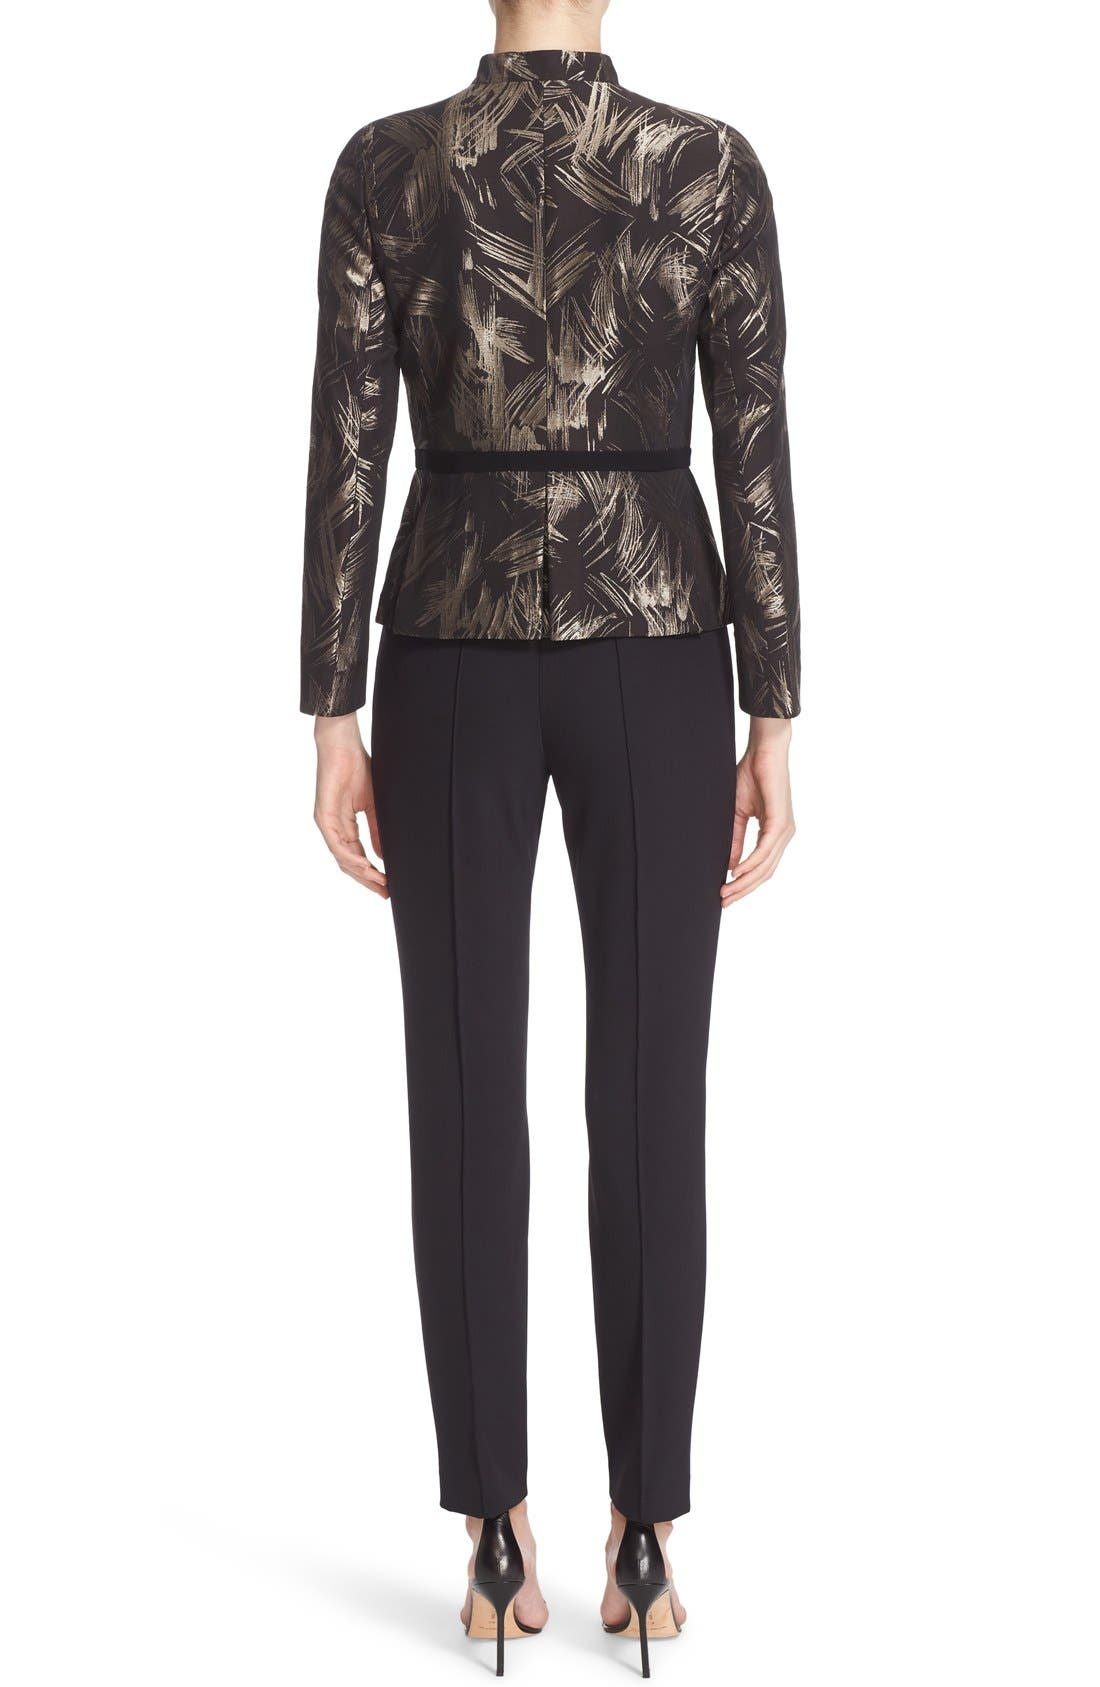 LAFAYETTE 148 NEW YORK, 'Gramercy' Acclaimed Stretch Pants, Alternate thumbnail 9, color, BLACK